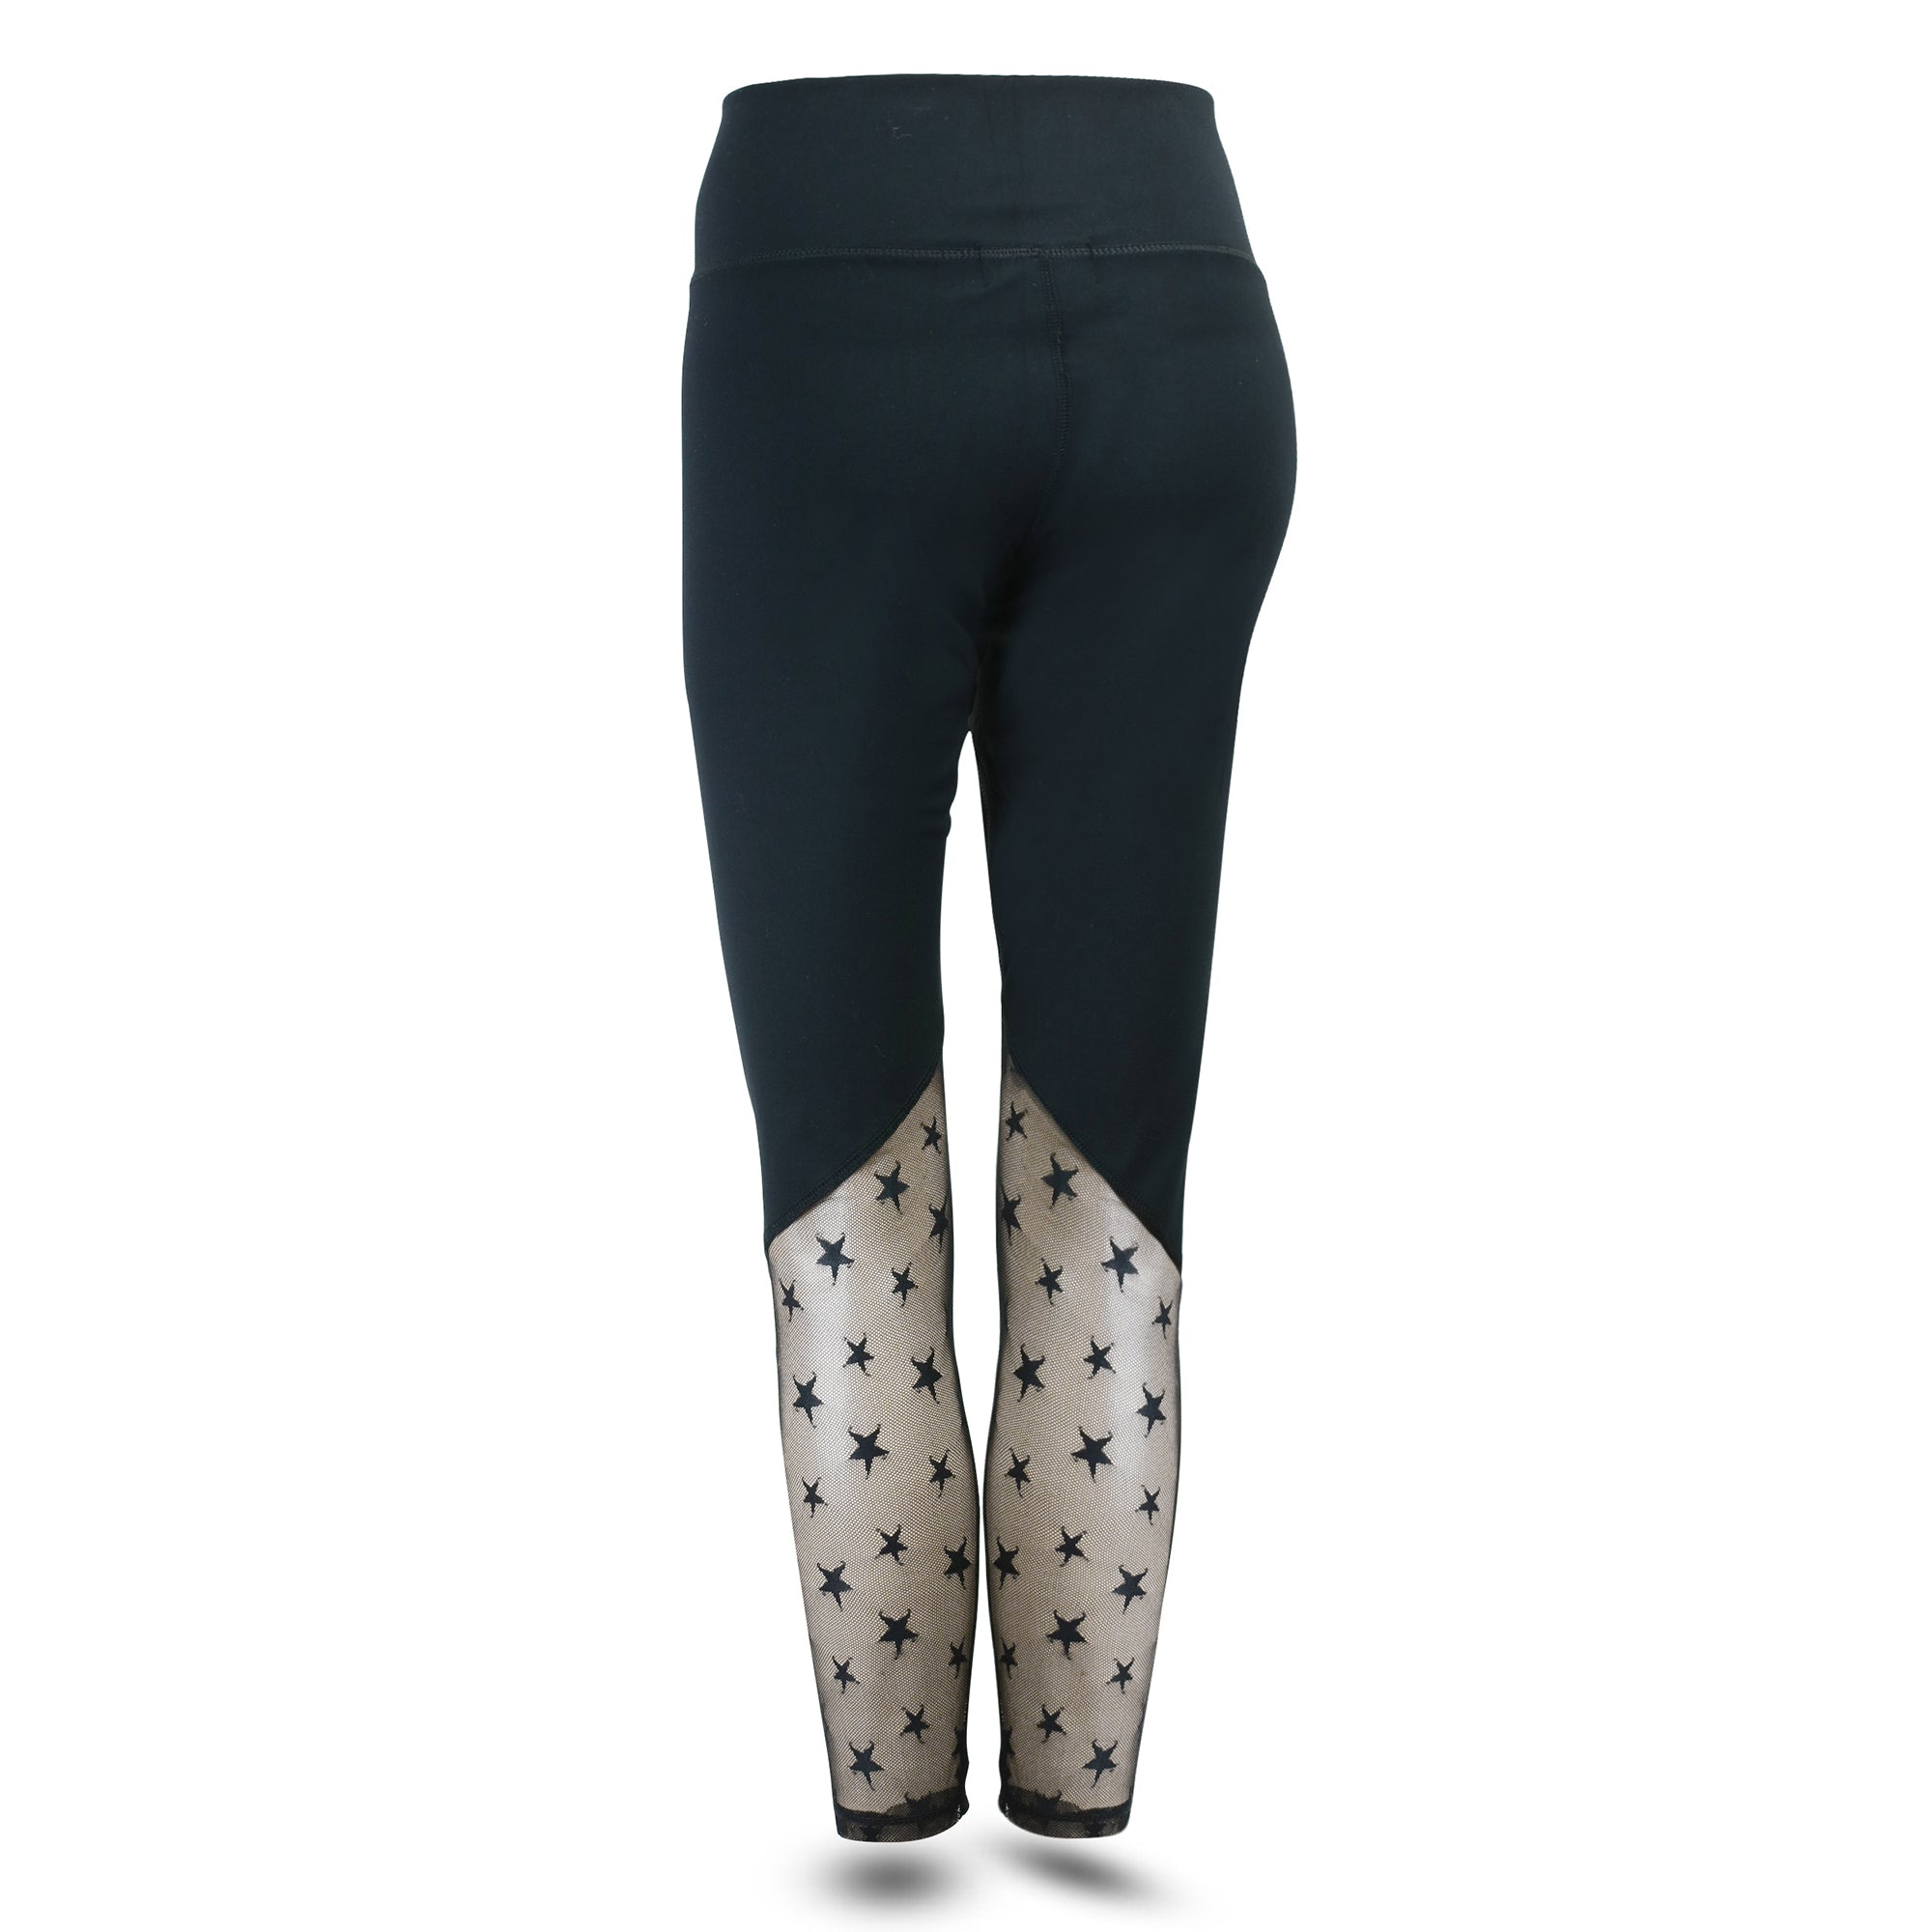 ***NEW***LIMITED EDITION STAR-MESH INSERT LEGGINGS